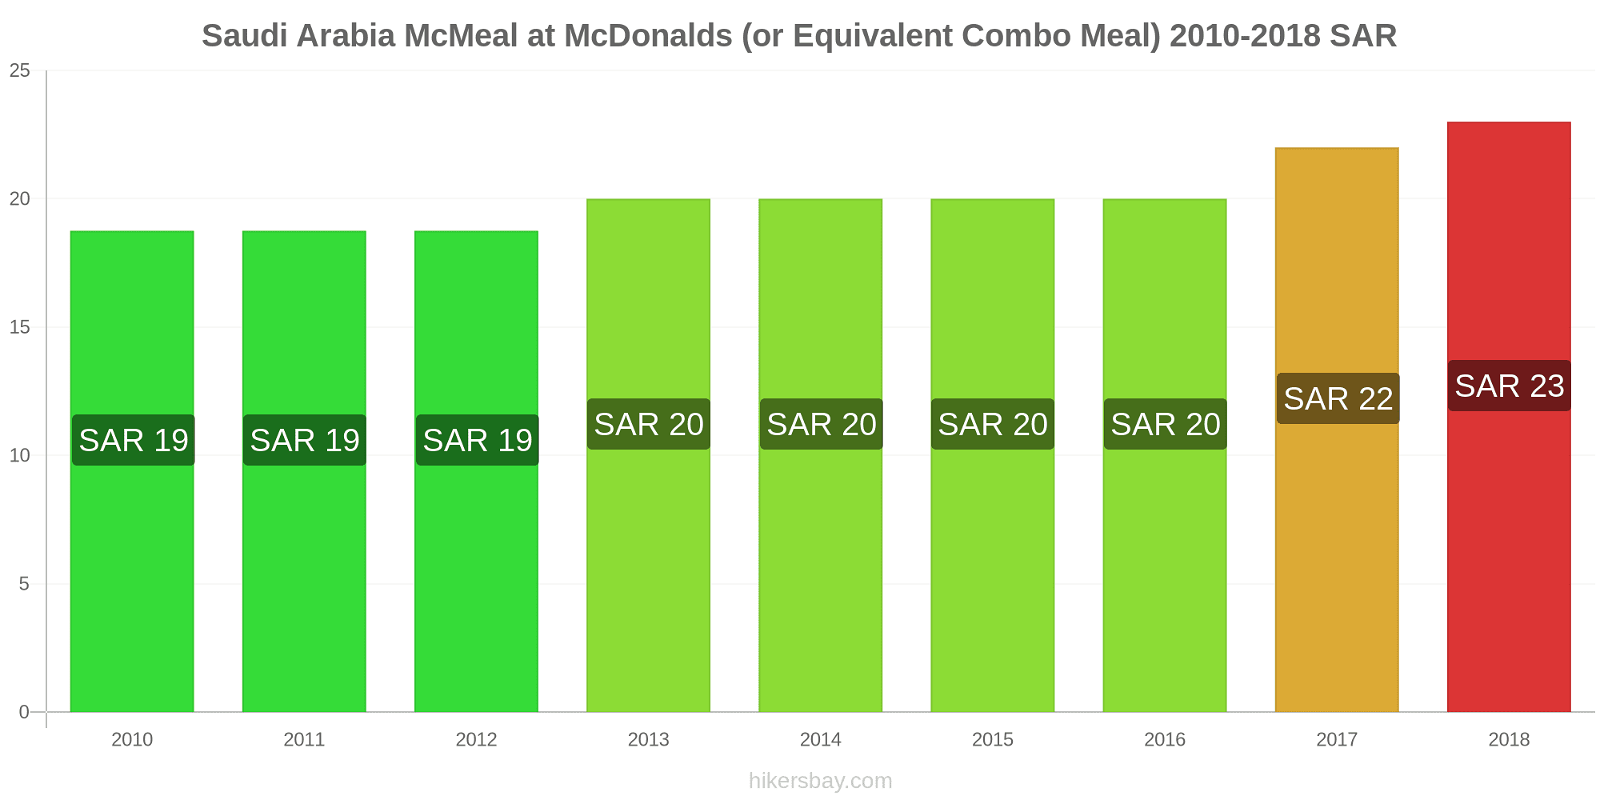 Saudi Arabia price changes McMeal at McDonalds (or Equivalent Combo Meal) hikersbay.com